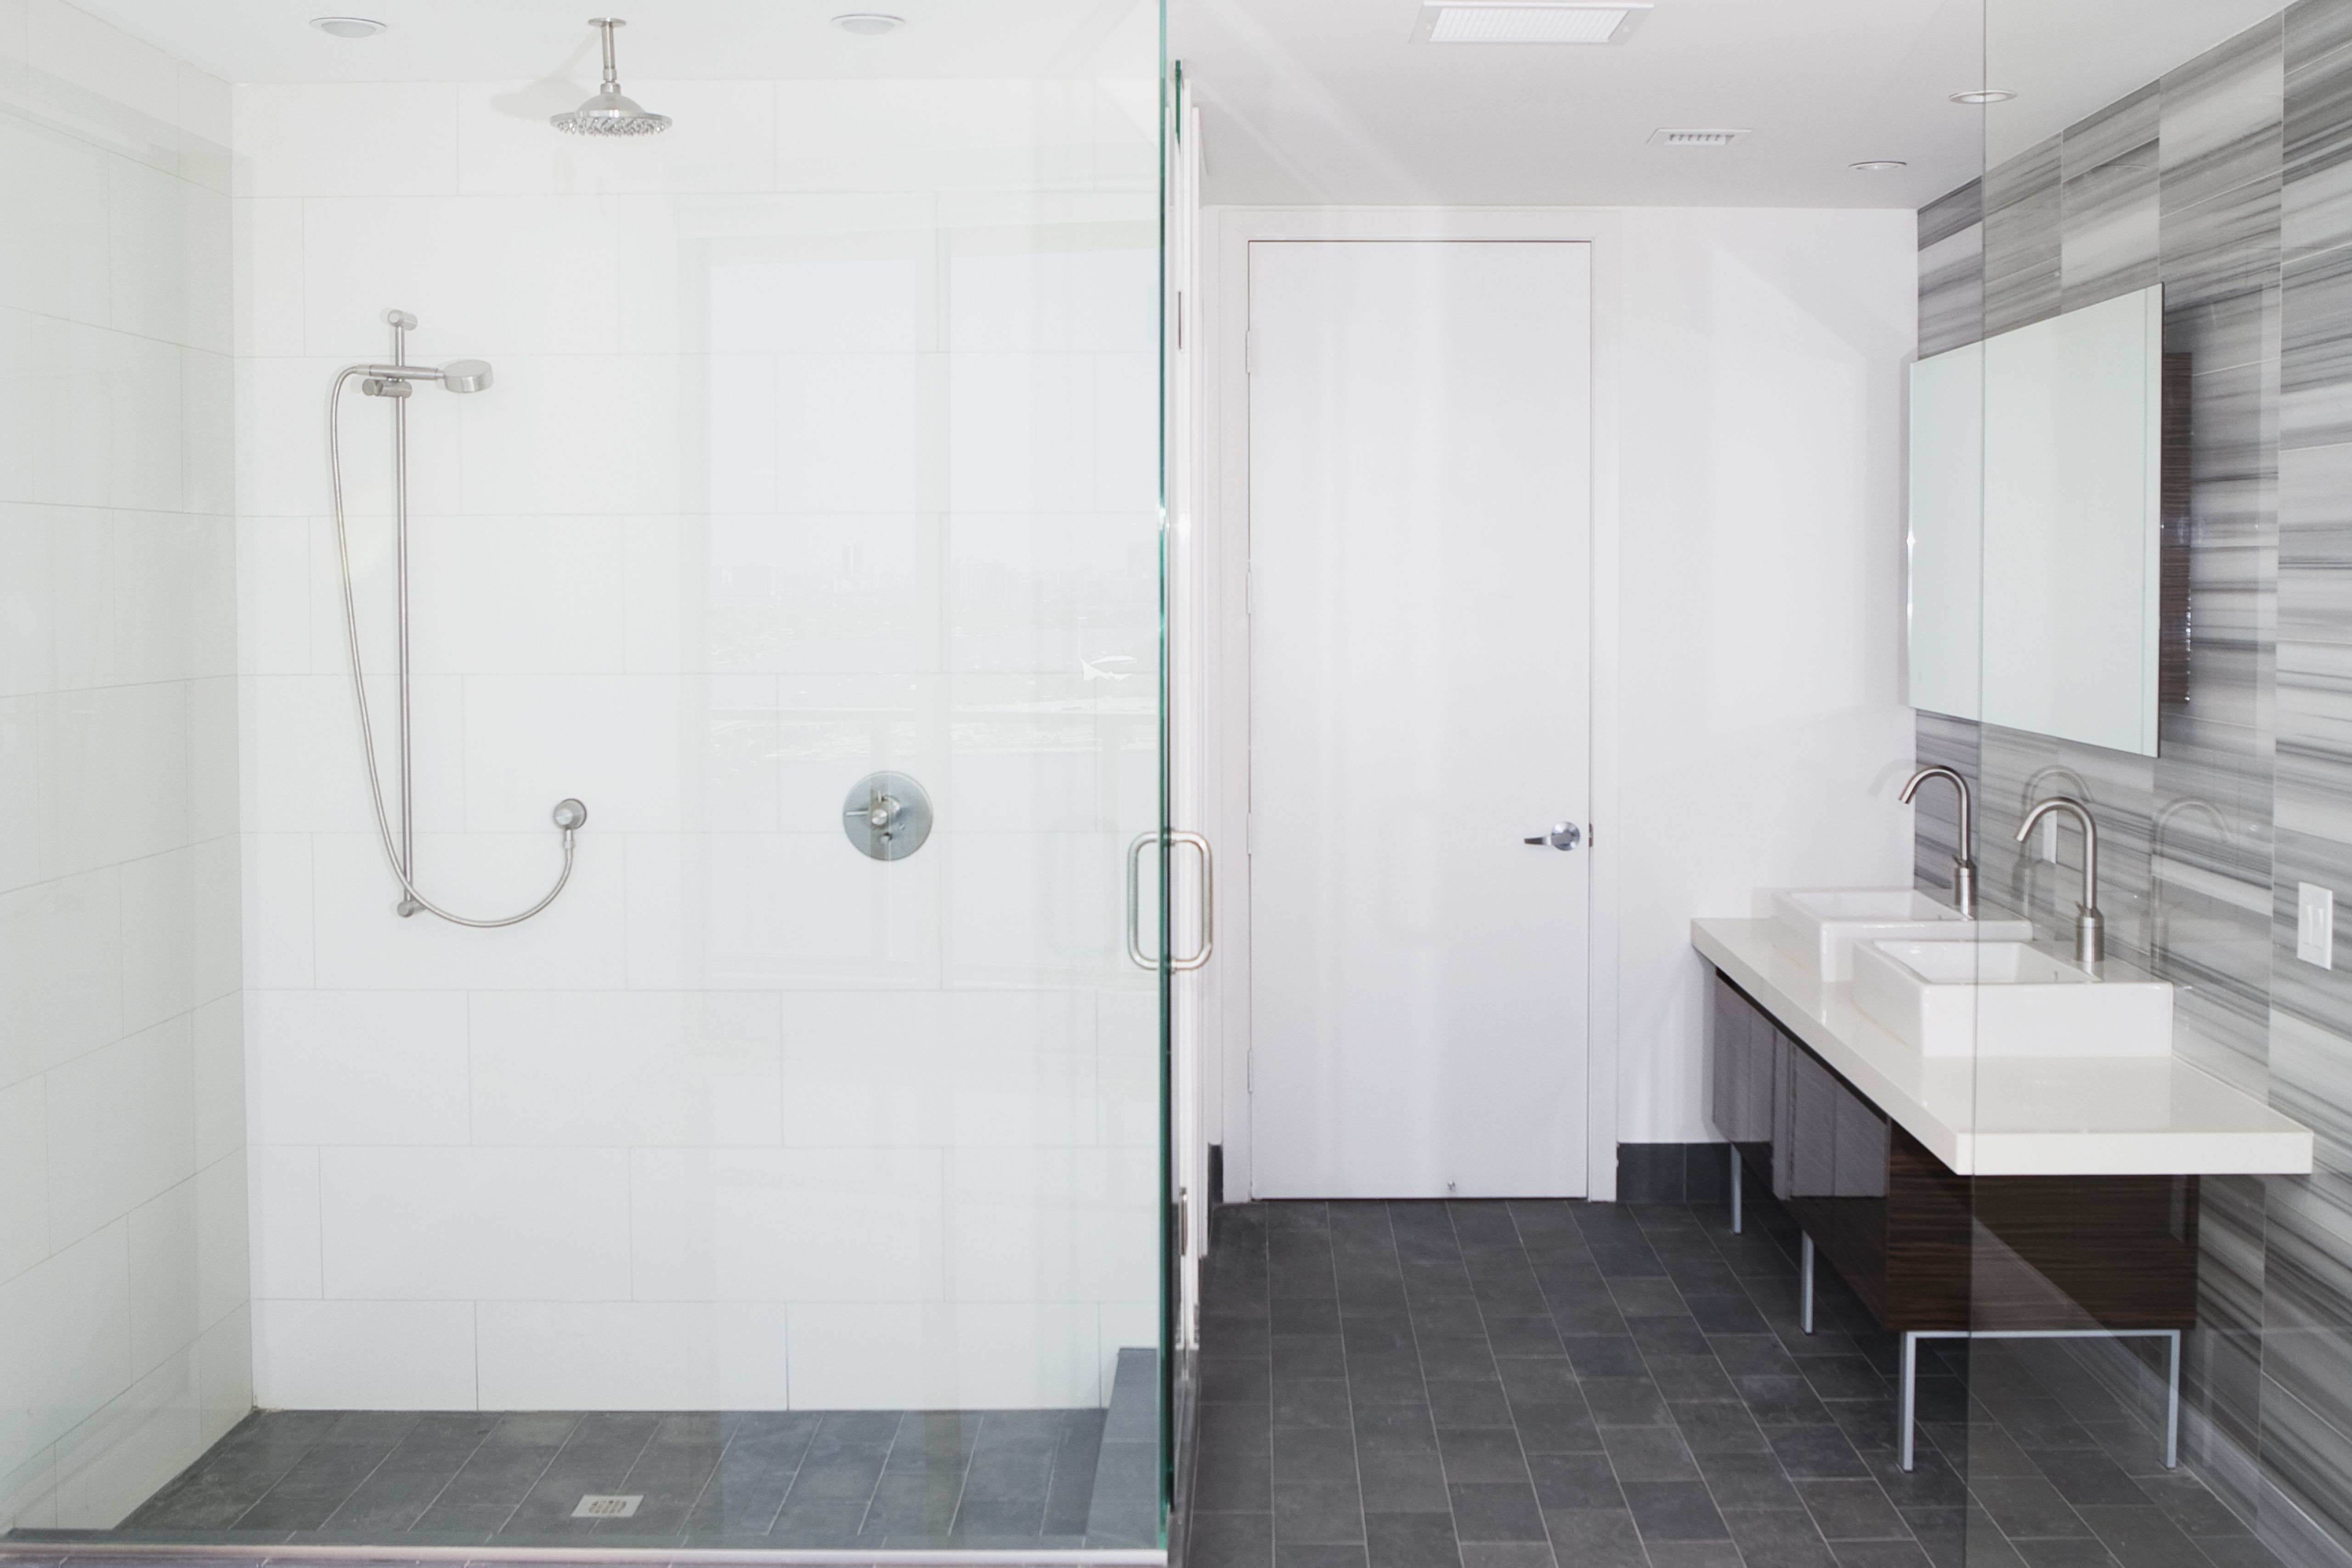 Before You Buy a Tub or Shower Surround